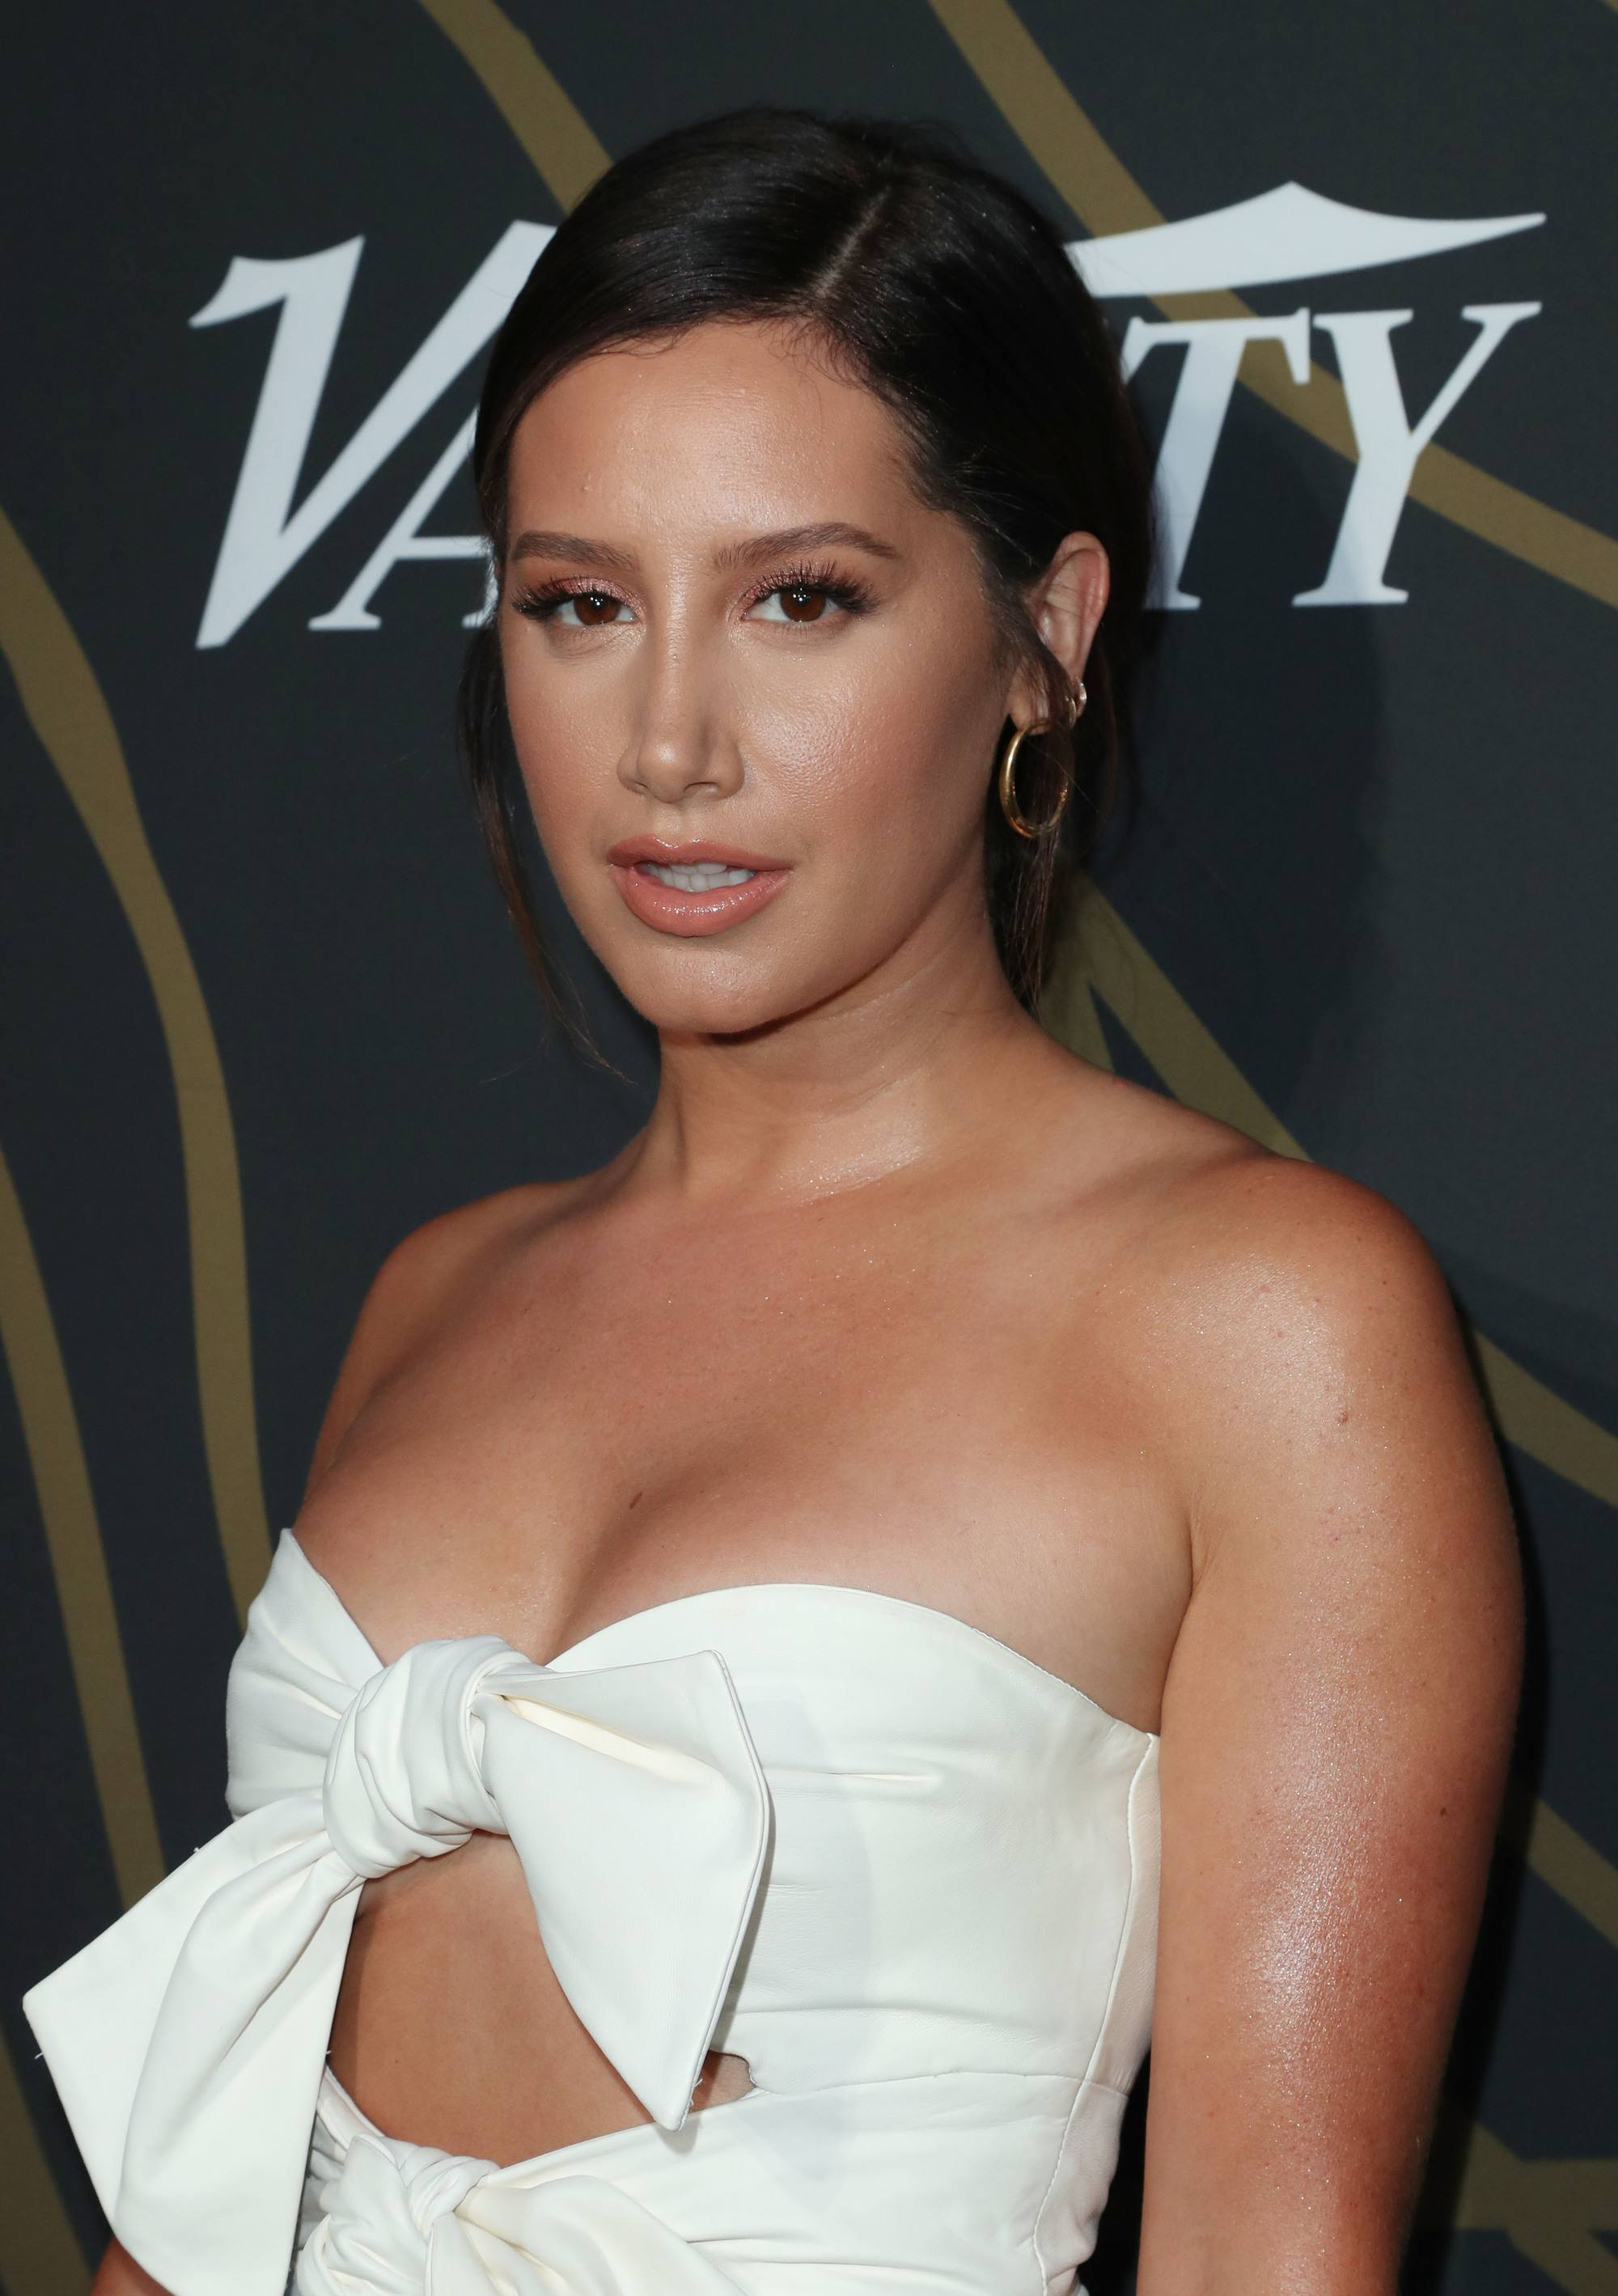 ashley tisdale at the variety's power of young hollywood event with new dark hair colour